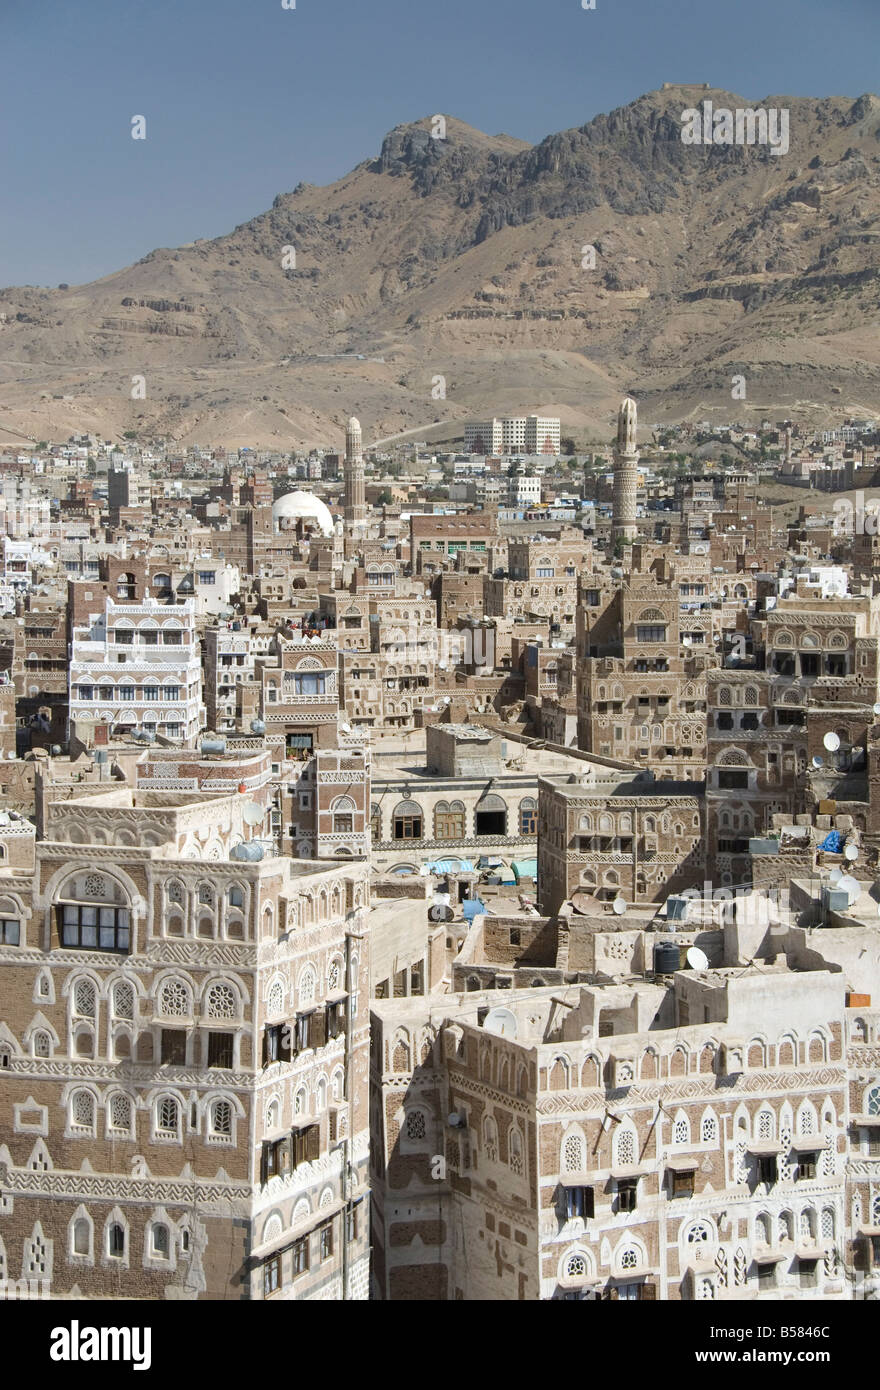 Traditional ornamented brick architecture on tall houses in Old City, Sana'a, UNESCO World Heritage Site, Yemen, - Stock Image